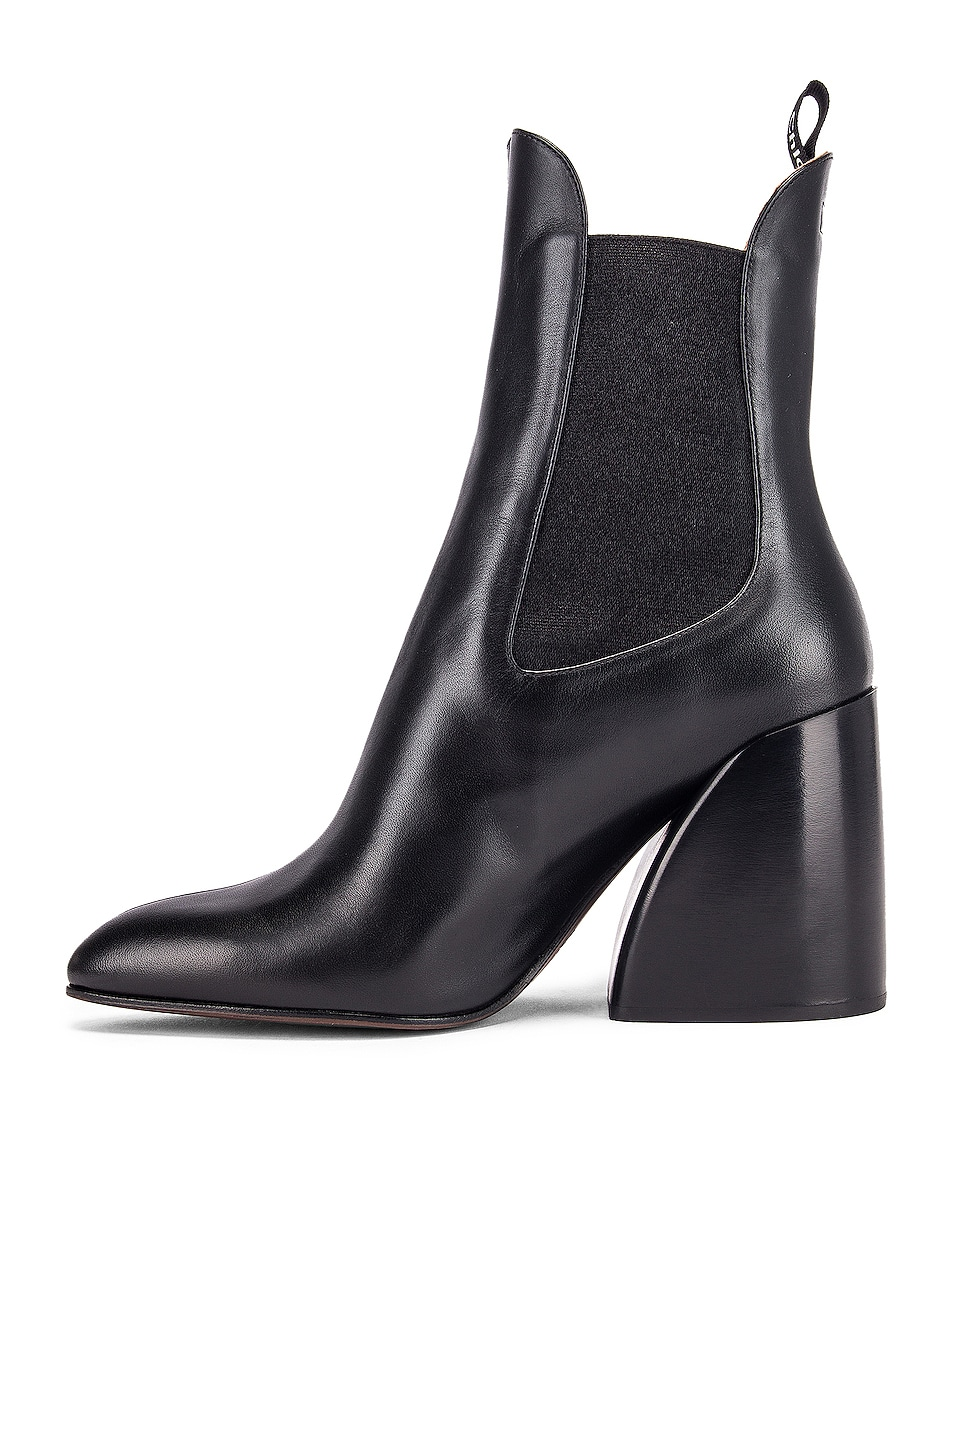 Image 5 of Chloe Leather Ankle Booties in Black